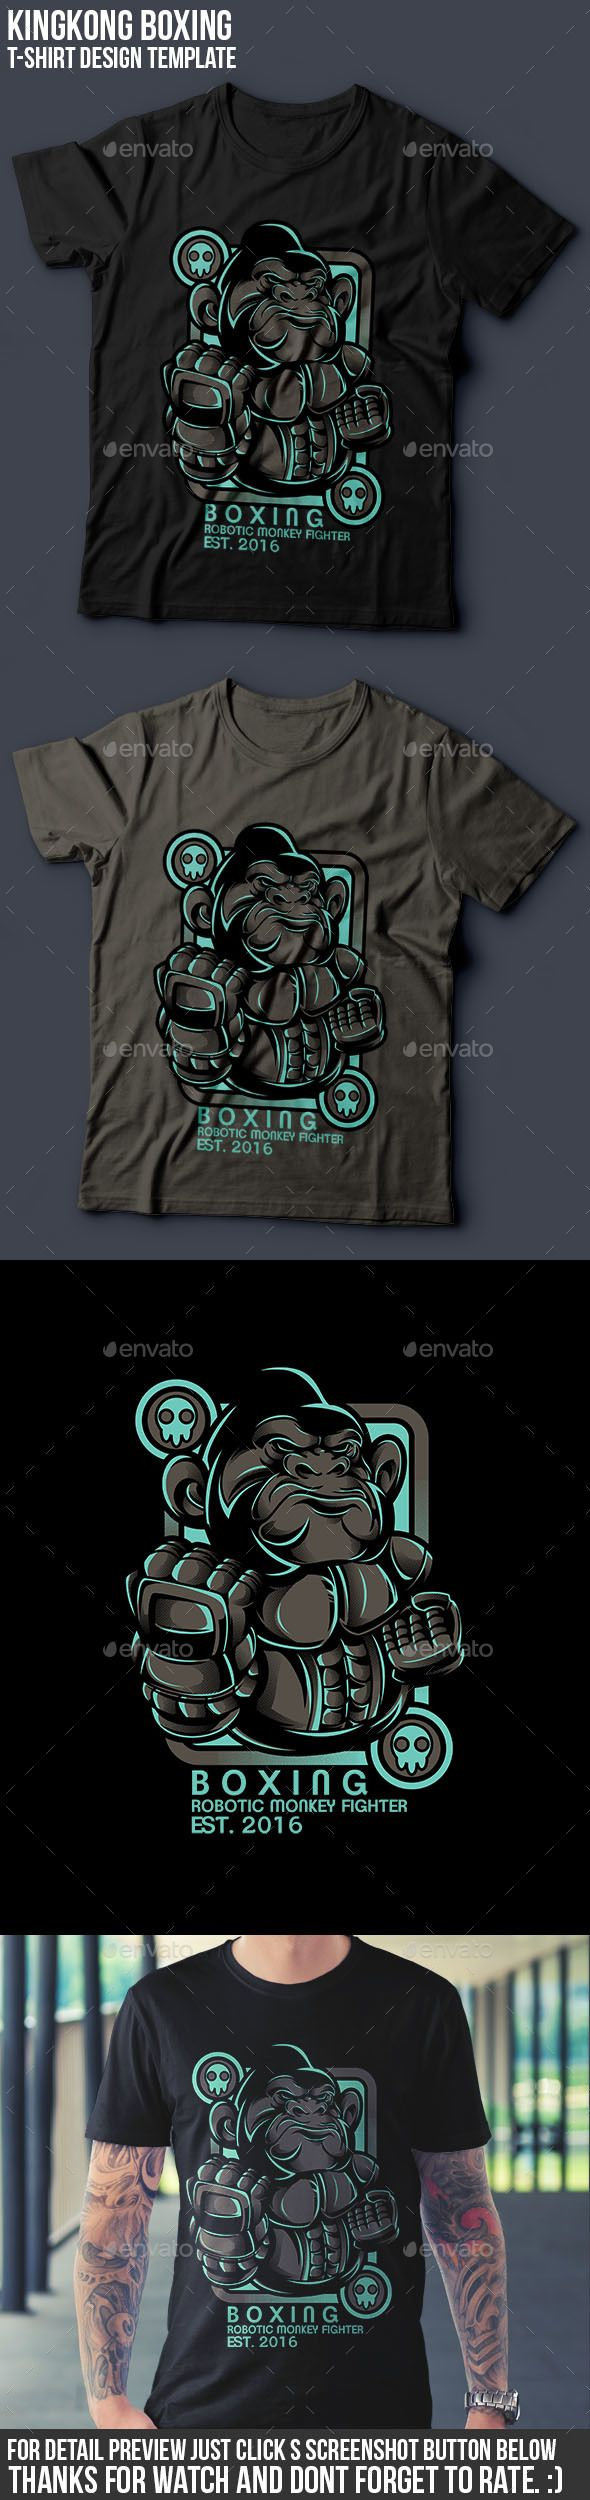 Pin by Cuyhfw on Shirt Design Ideas | T shirt design ...